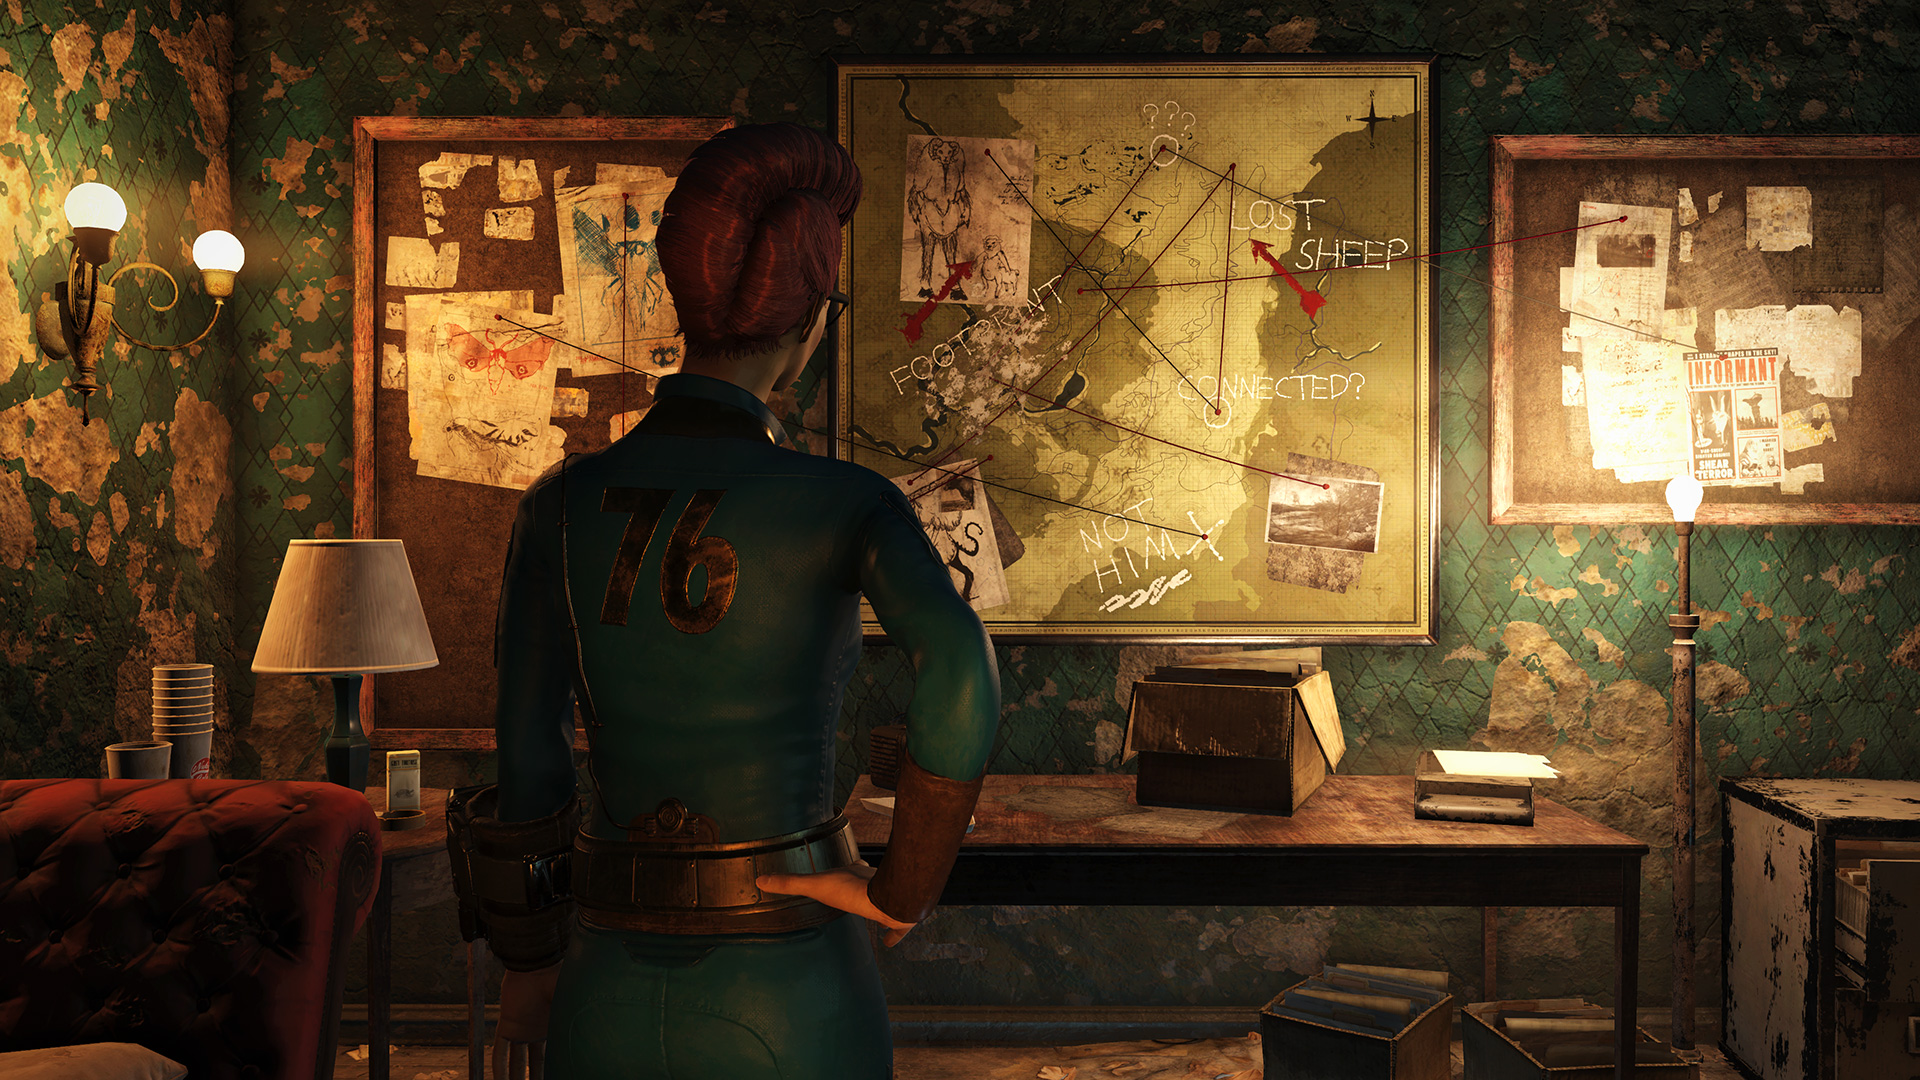 Fallout 76 Patch 8 Launches Today, Adding Item Renaming, a